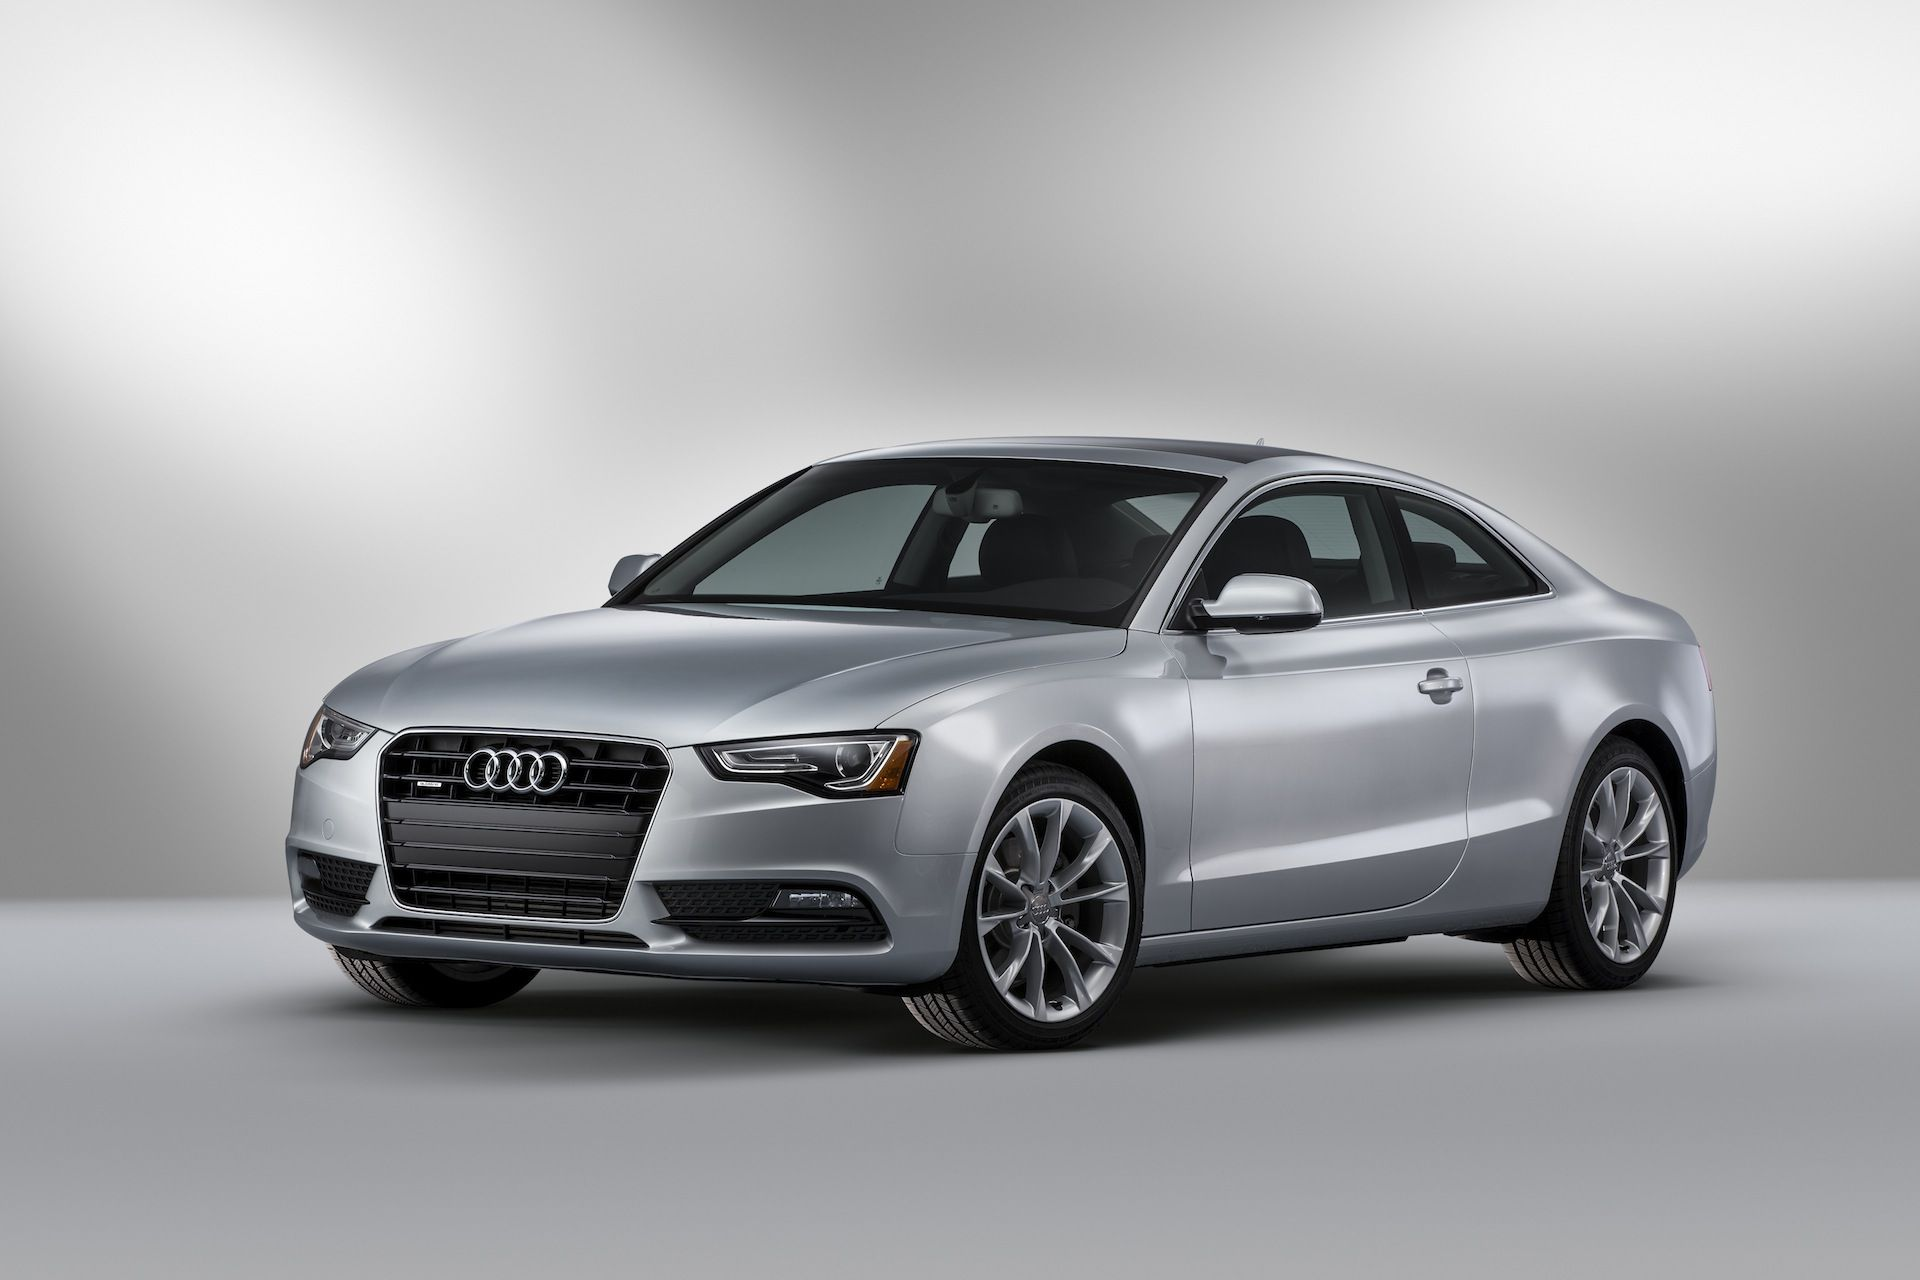 2014 Audi A5 Release Date Tags 2014 Audi A5 For Sale